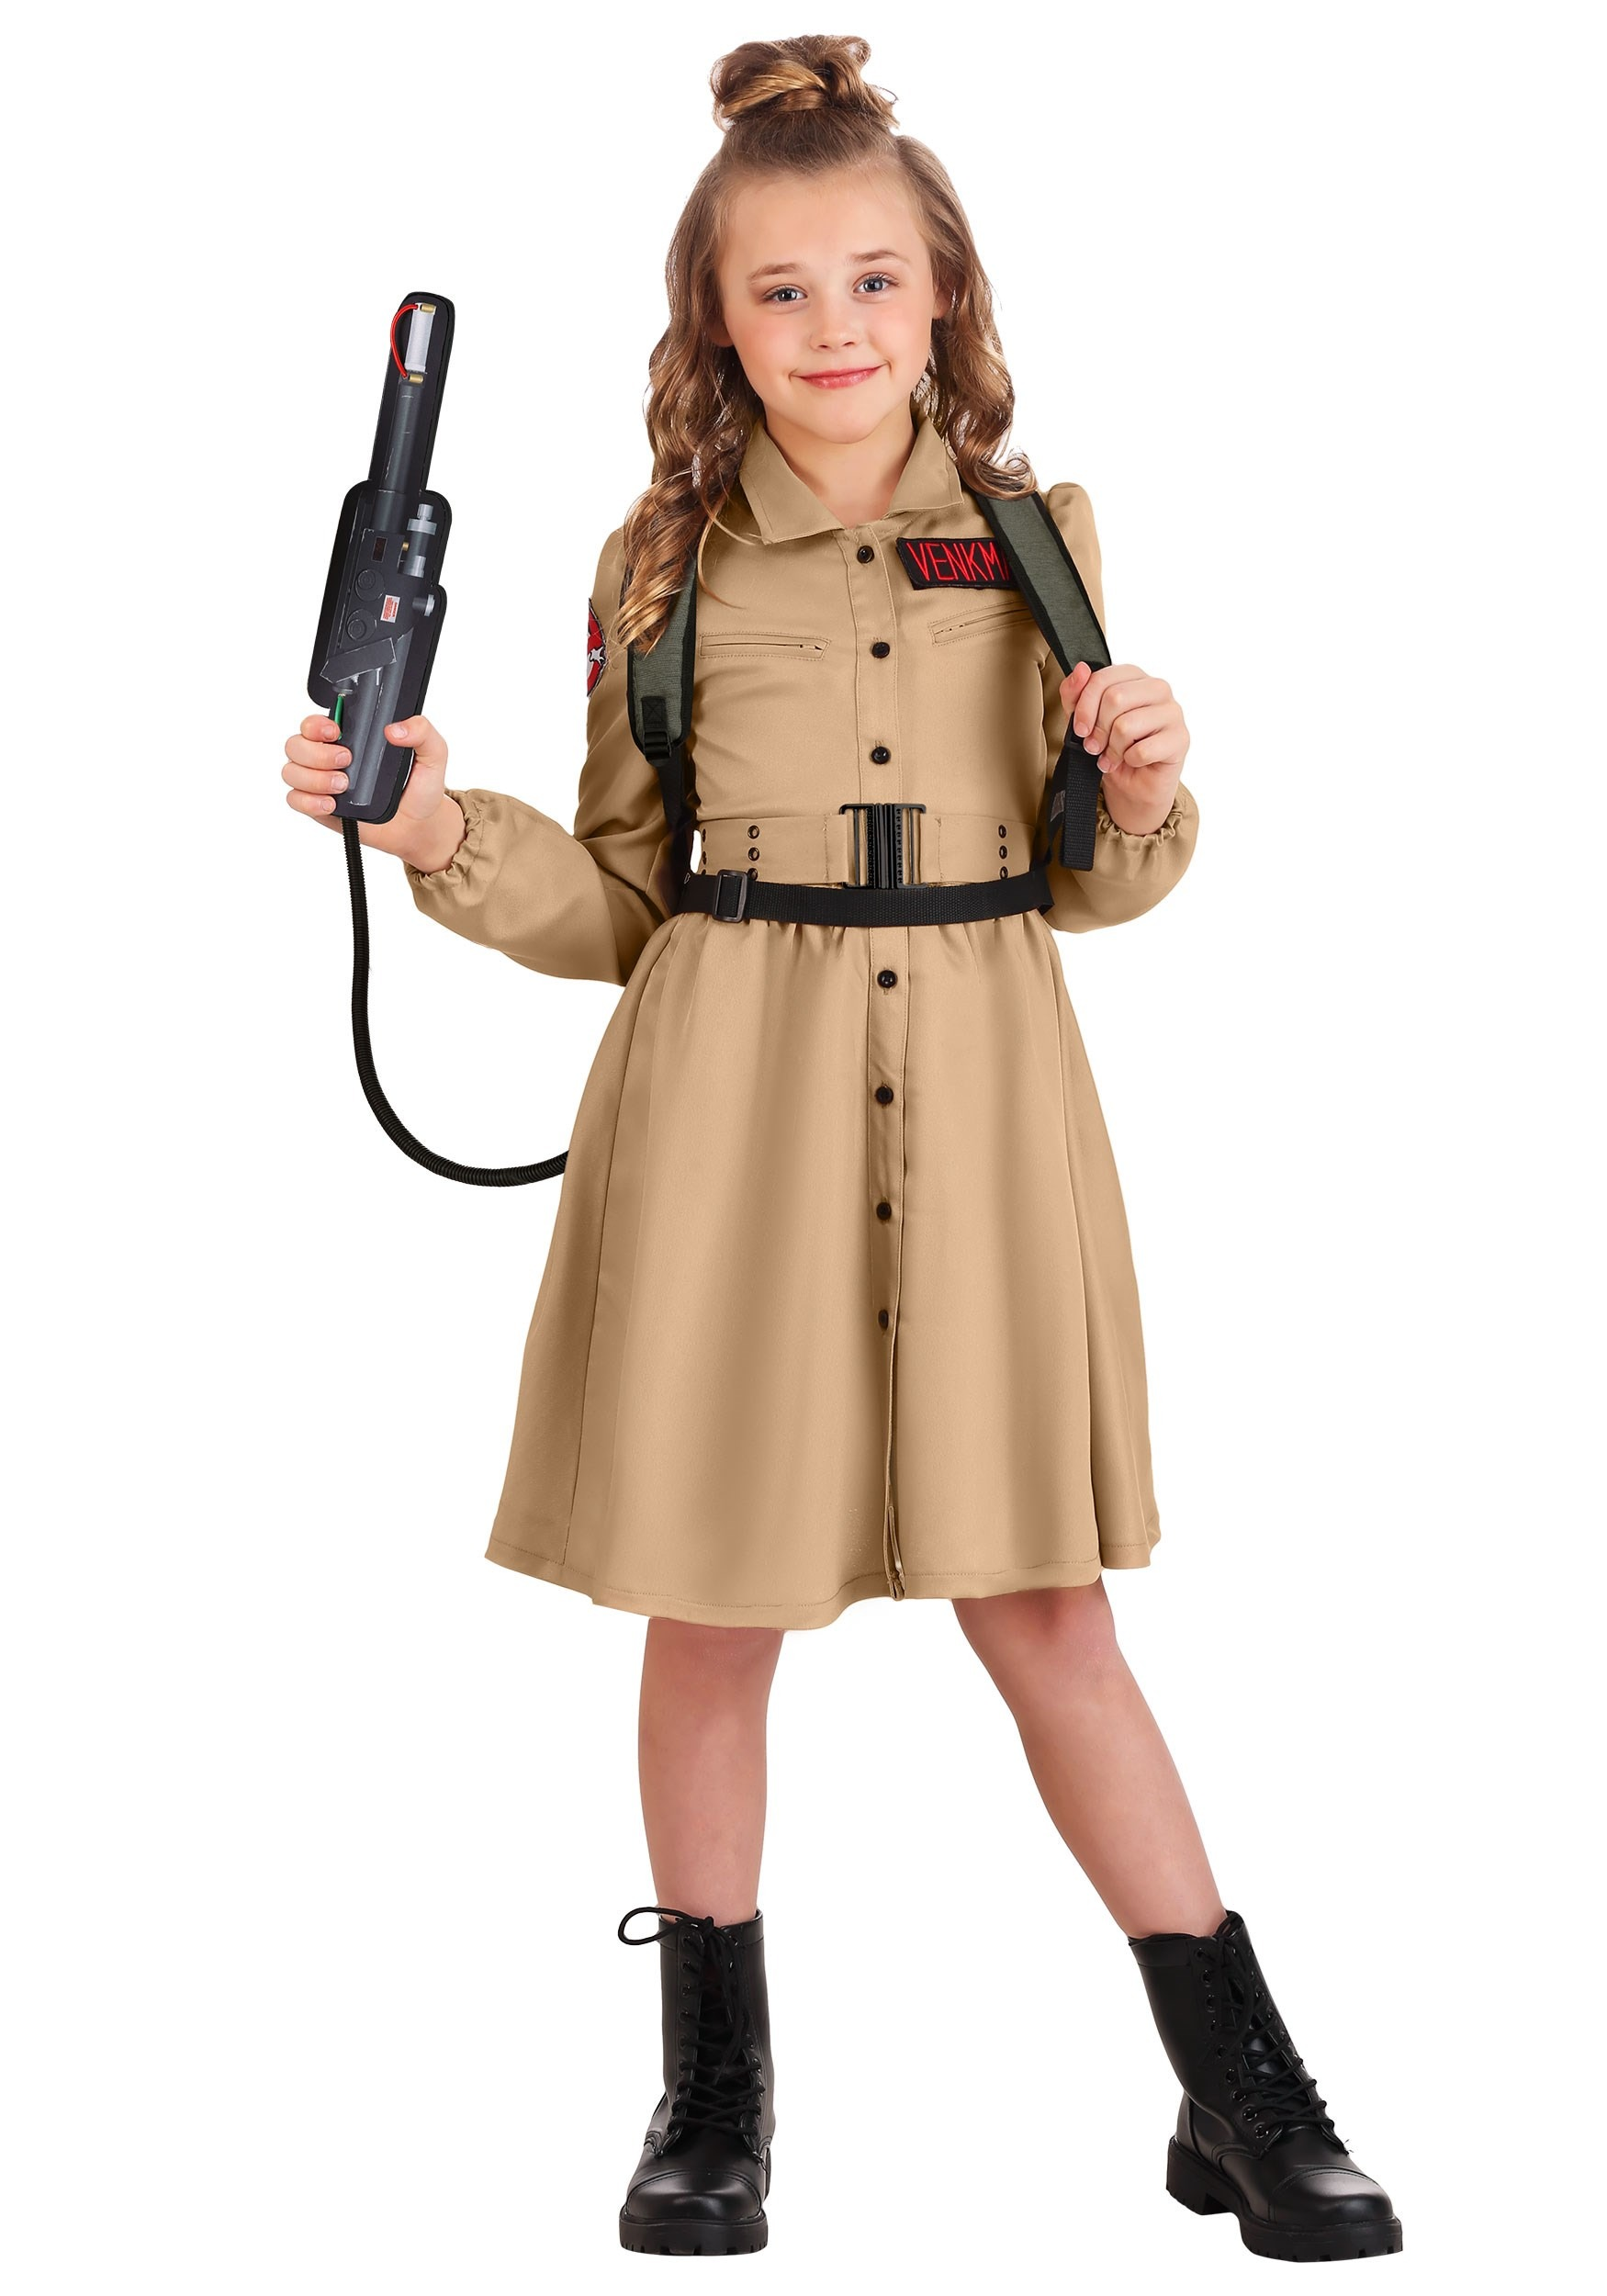 Ghostbusters Costume Dress for Girls